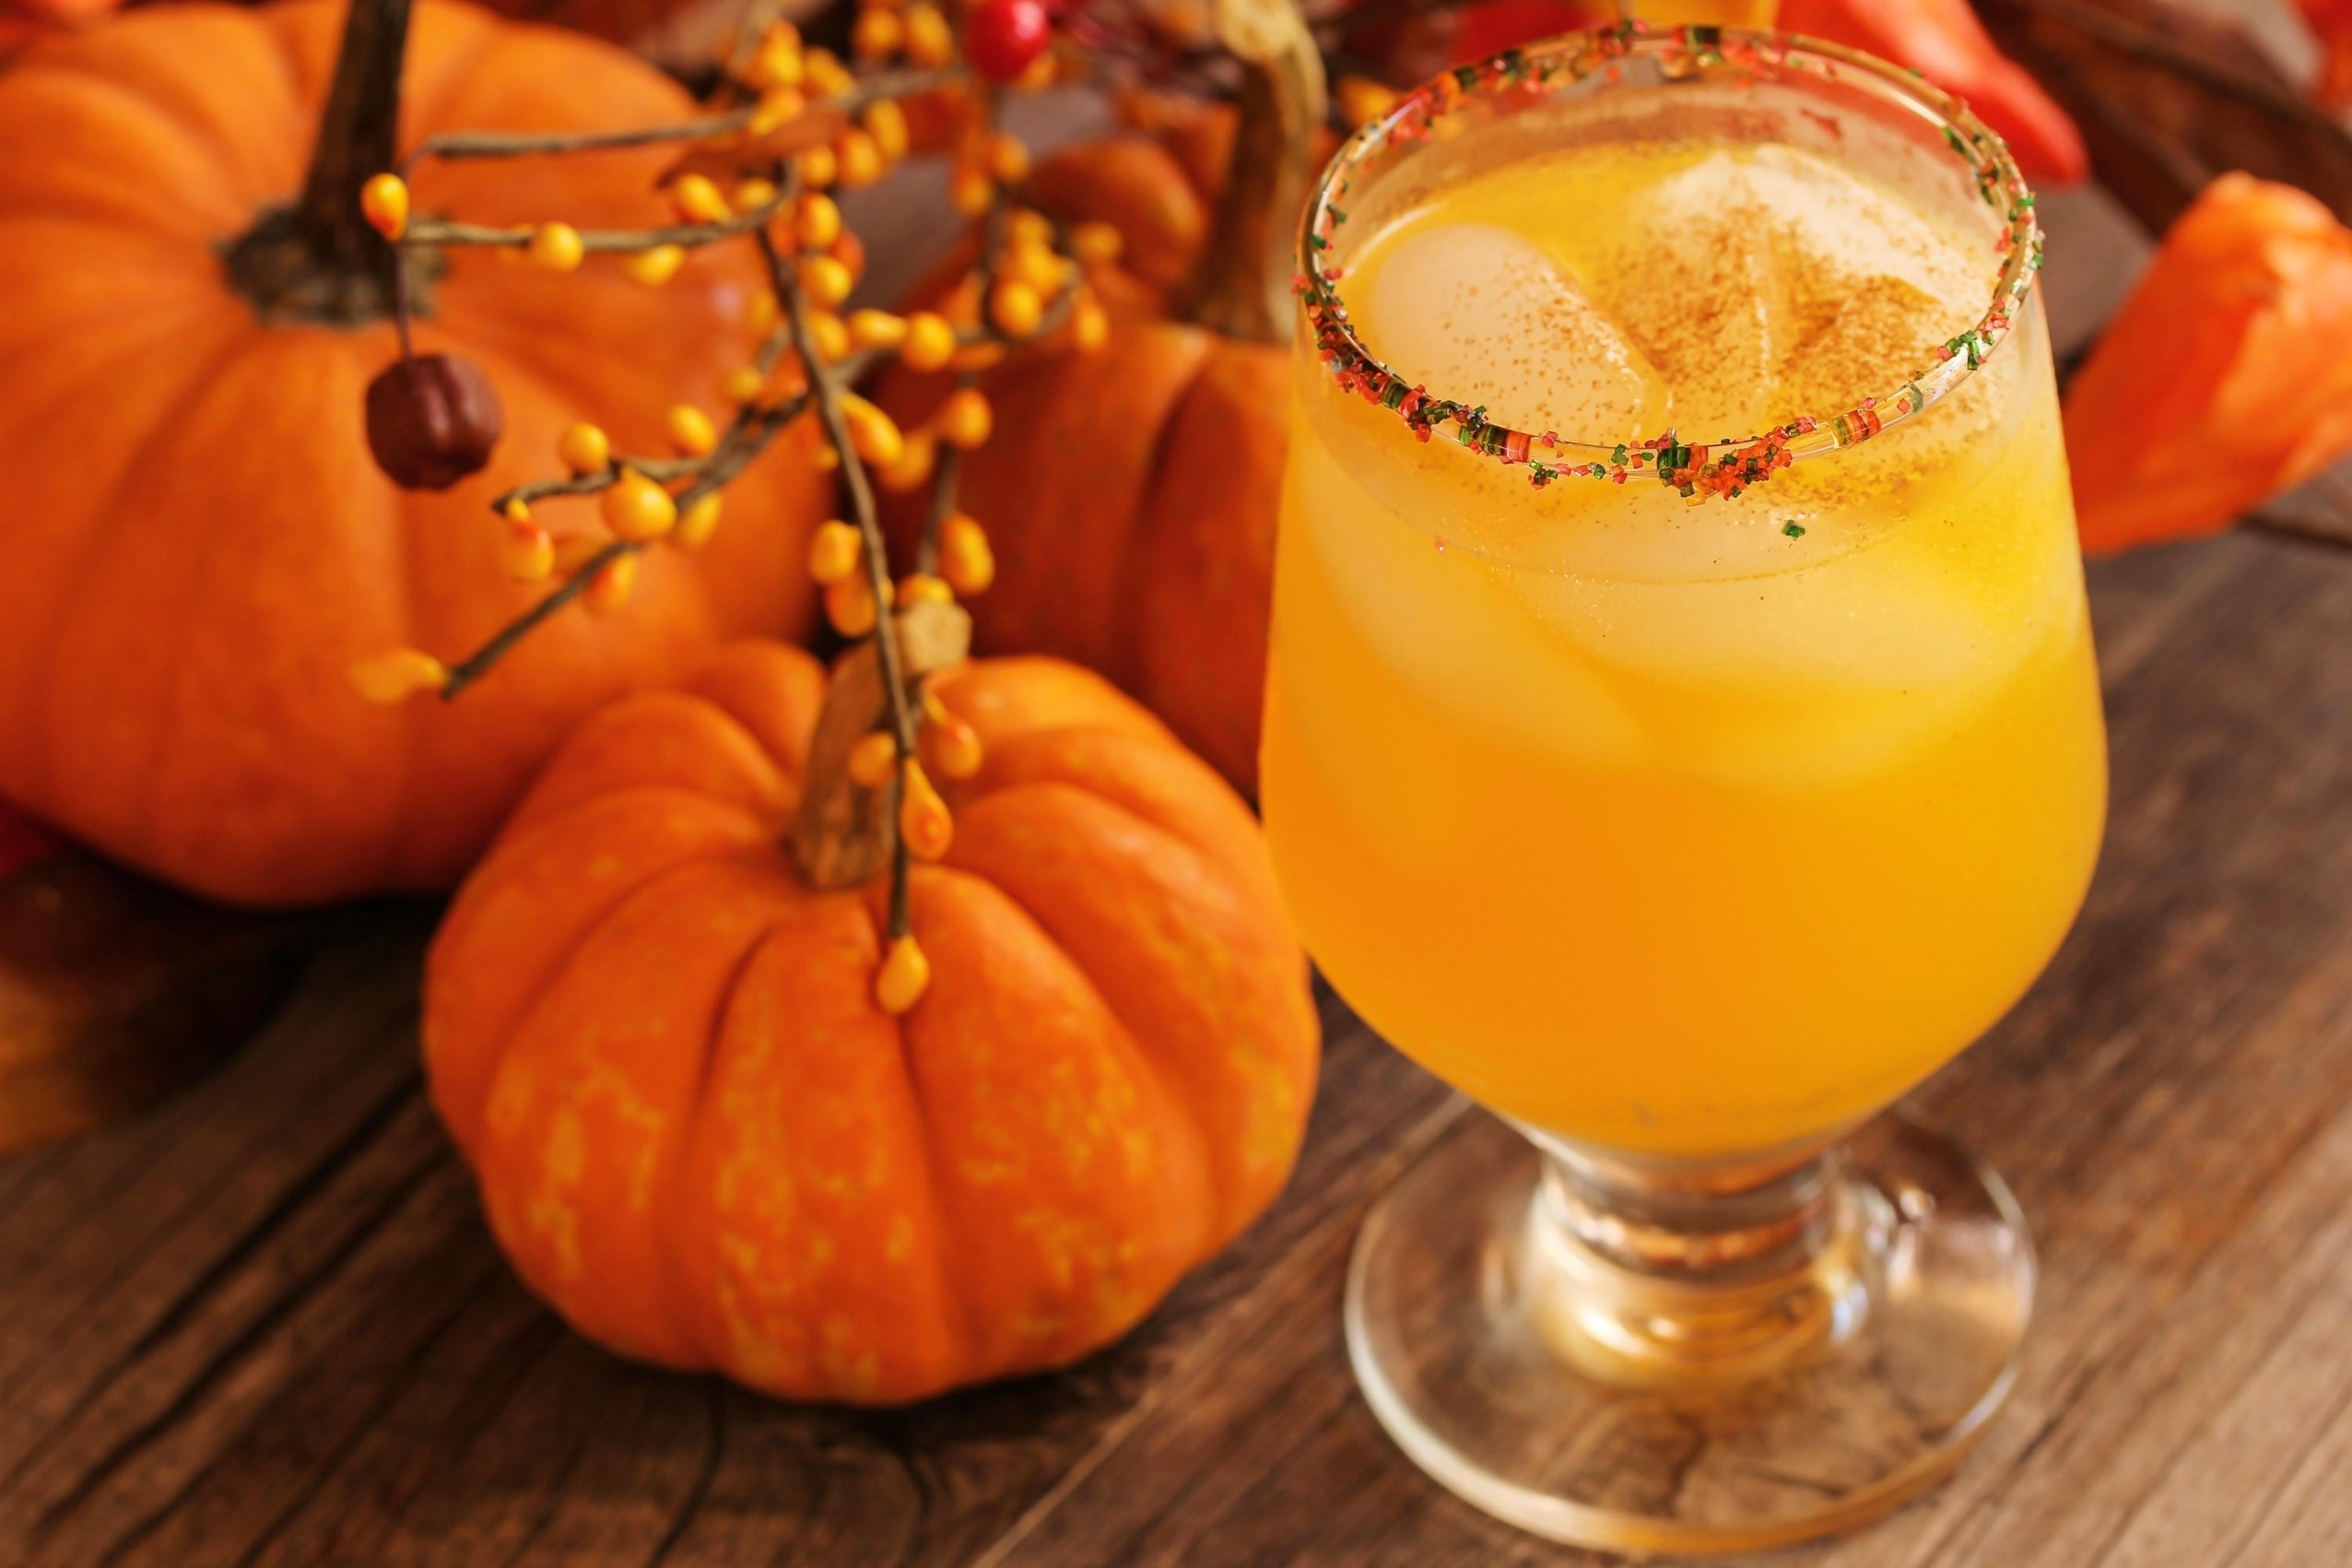 The Jack – O- Lantern: 1 oz D'USSE VSOP cognac, 1.5 oz orange juice, 0.5 oz ginger ale, 0.5 oz triple sec. Combine all ingredients into shaker and serve in old fashioned glass. Garnish with orange wheel or twist. (Image: D'USSE)